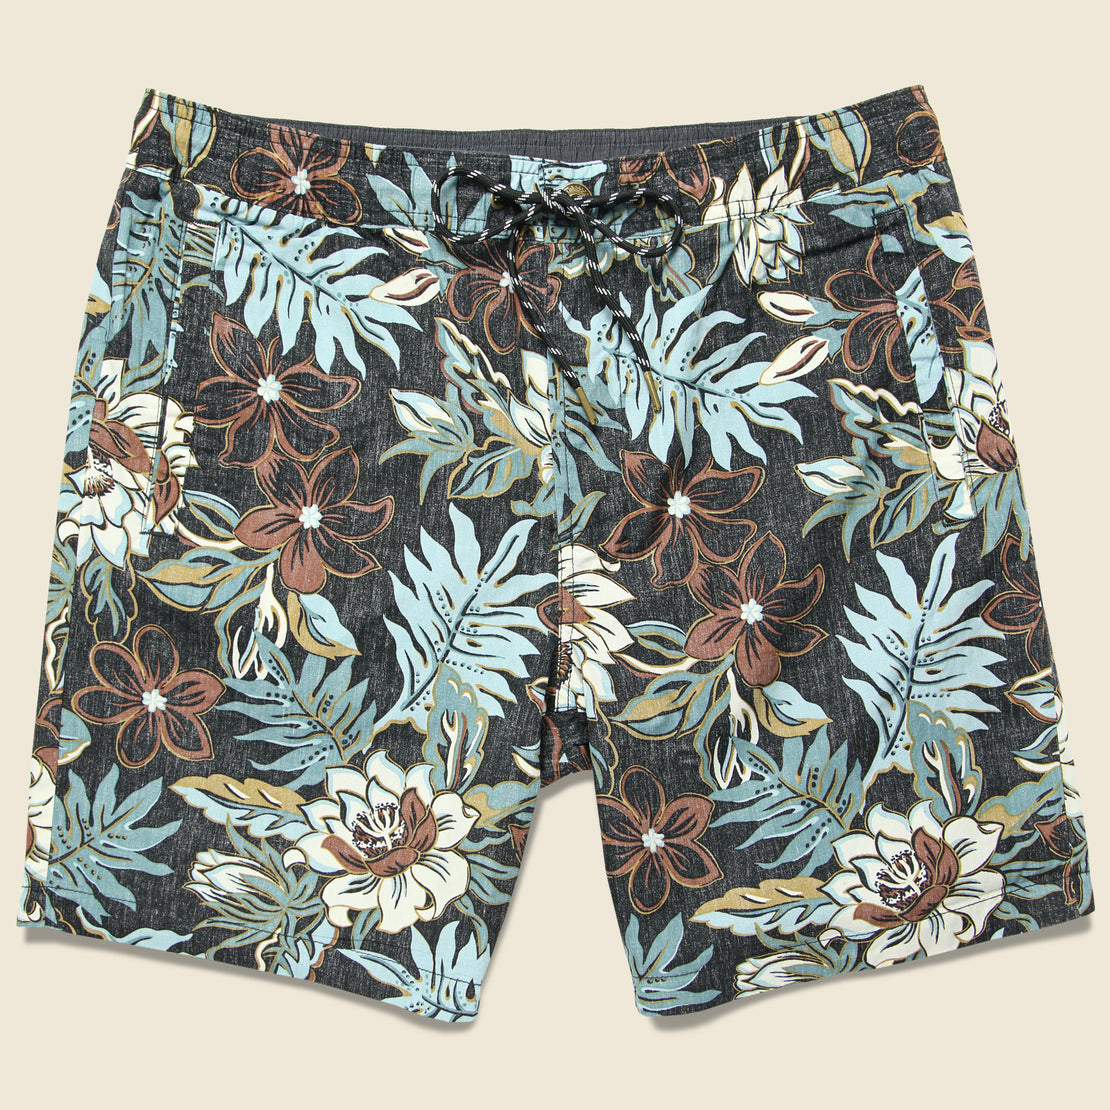 Reyn Spooner Vintage Hawaiian Floral Swim Trunk - Black